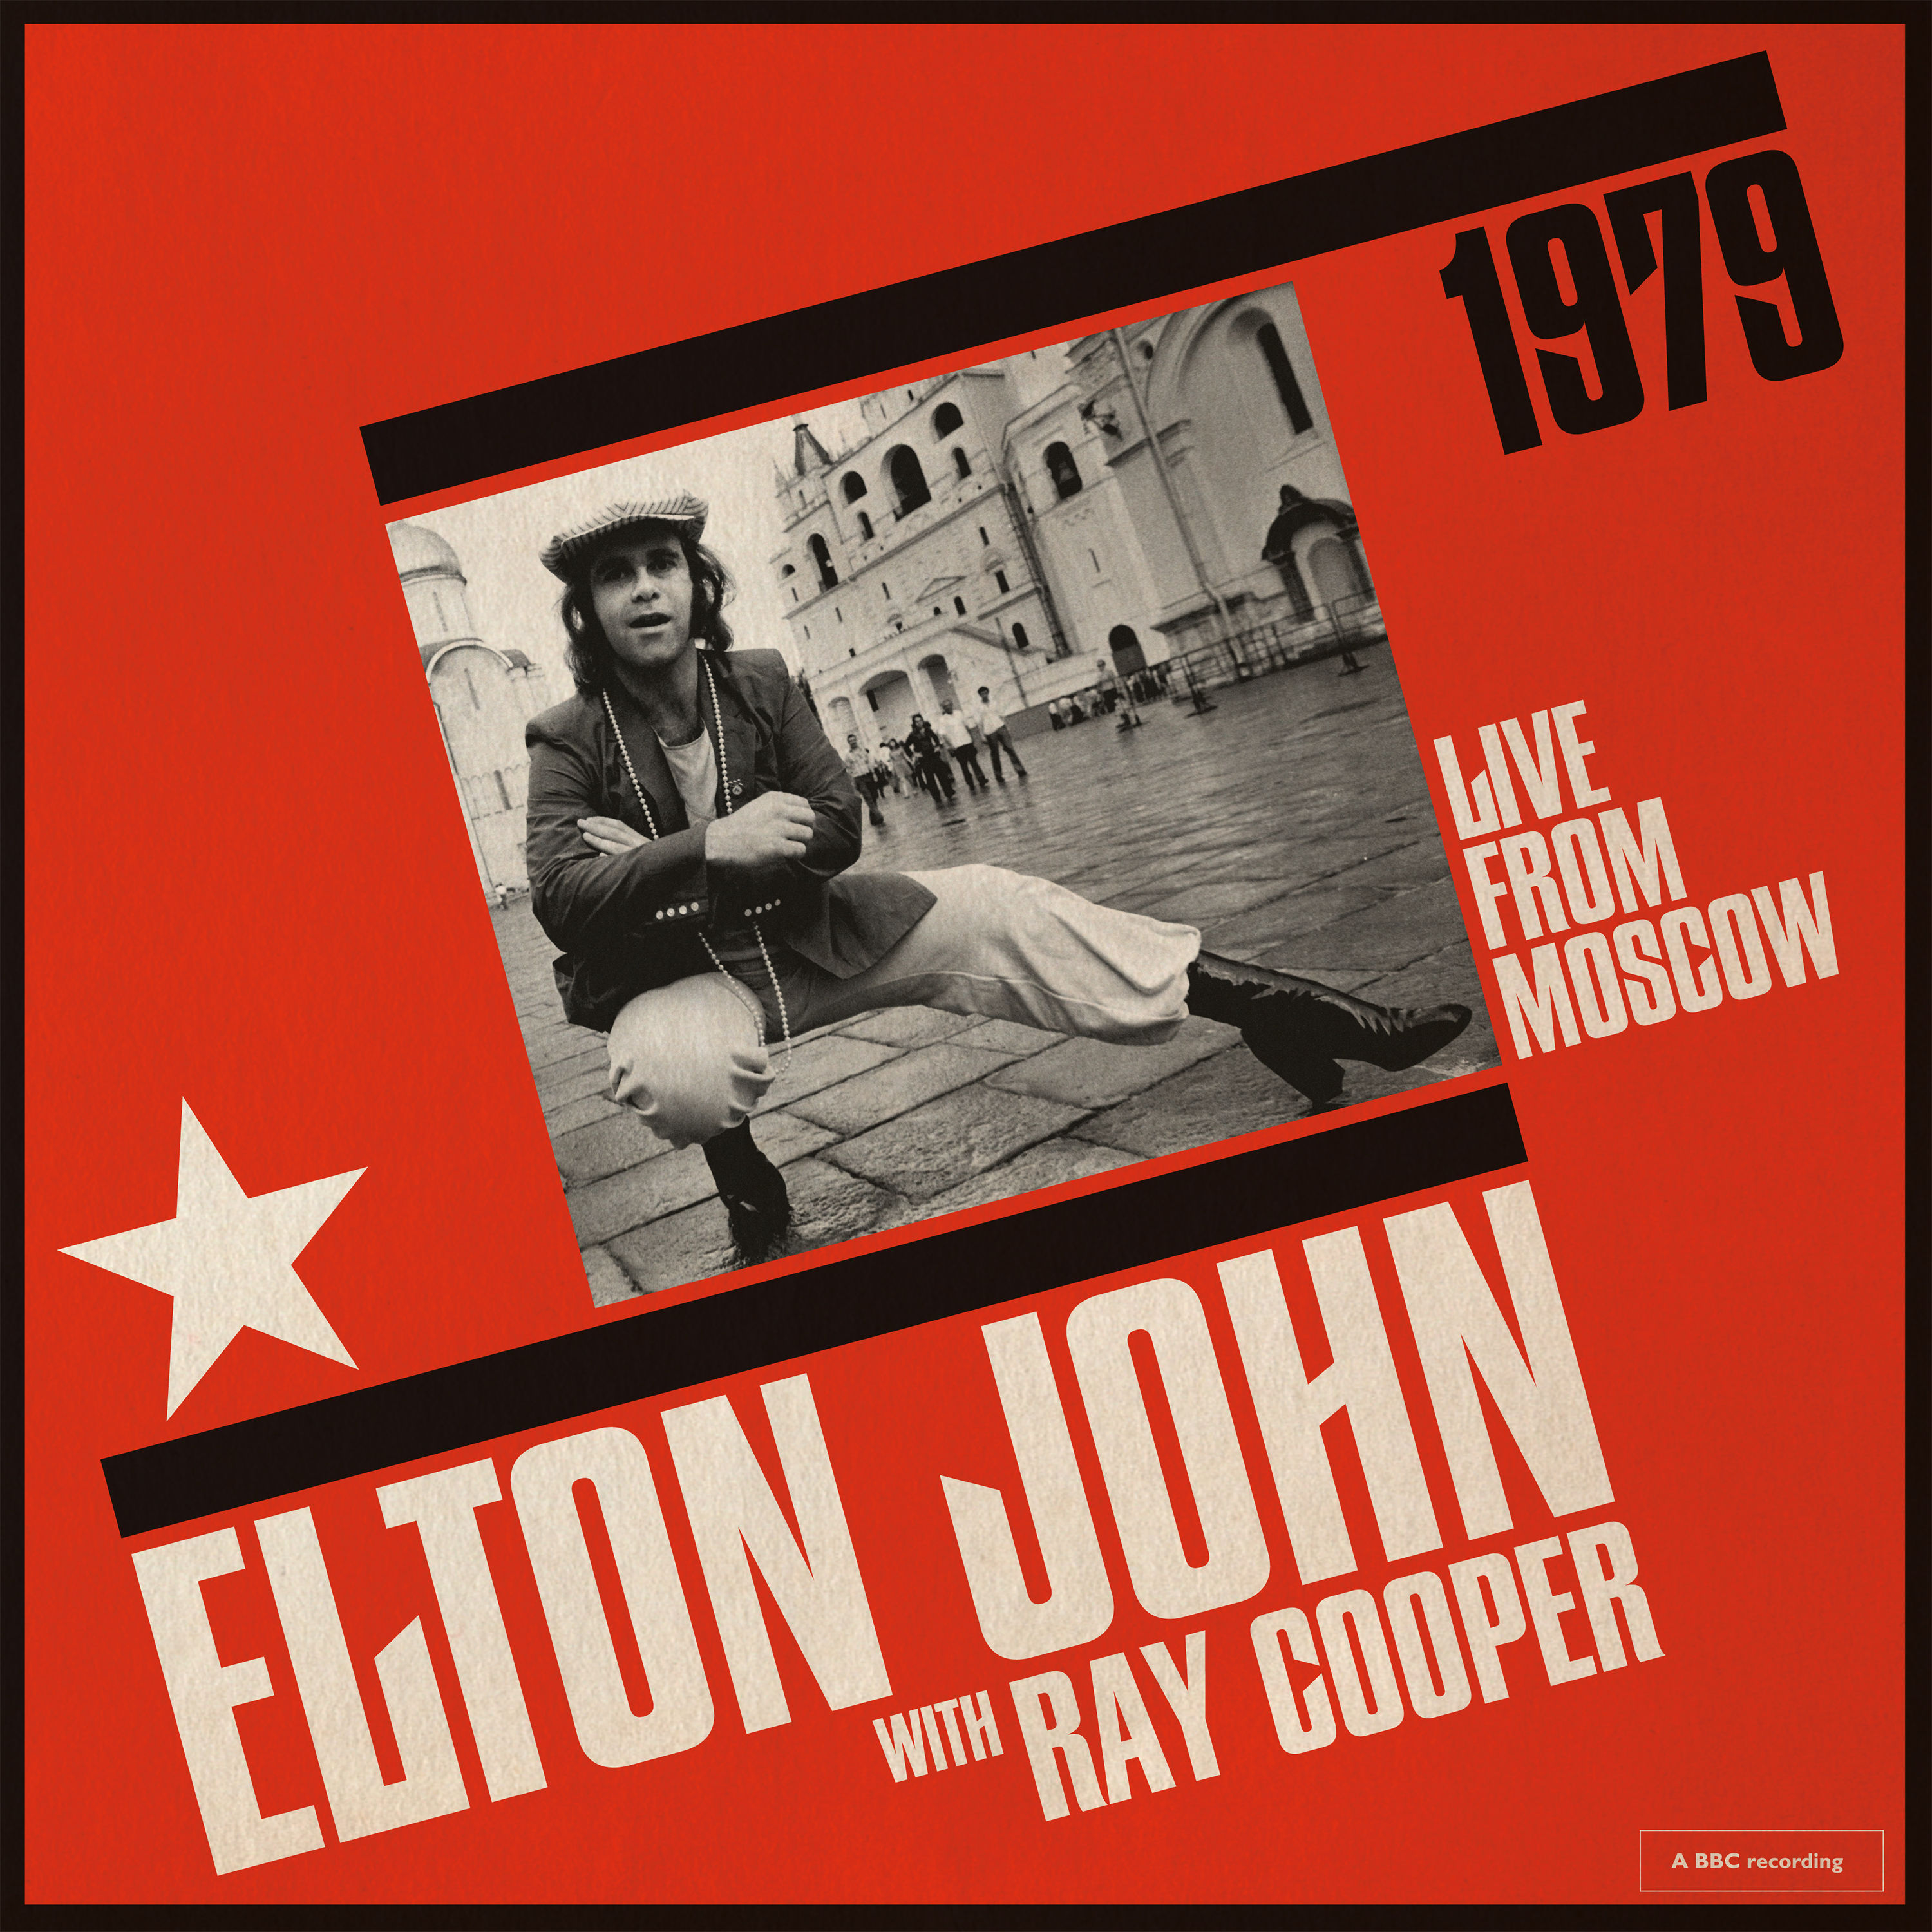 Elton John w/ Ray Cooper: Live From Moscow 2CD